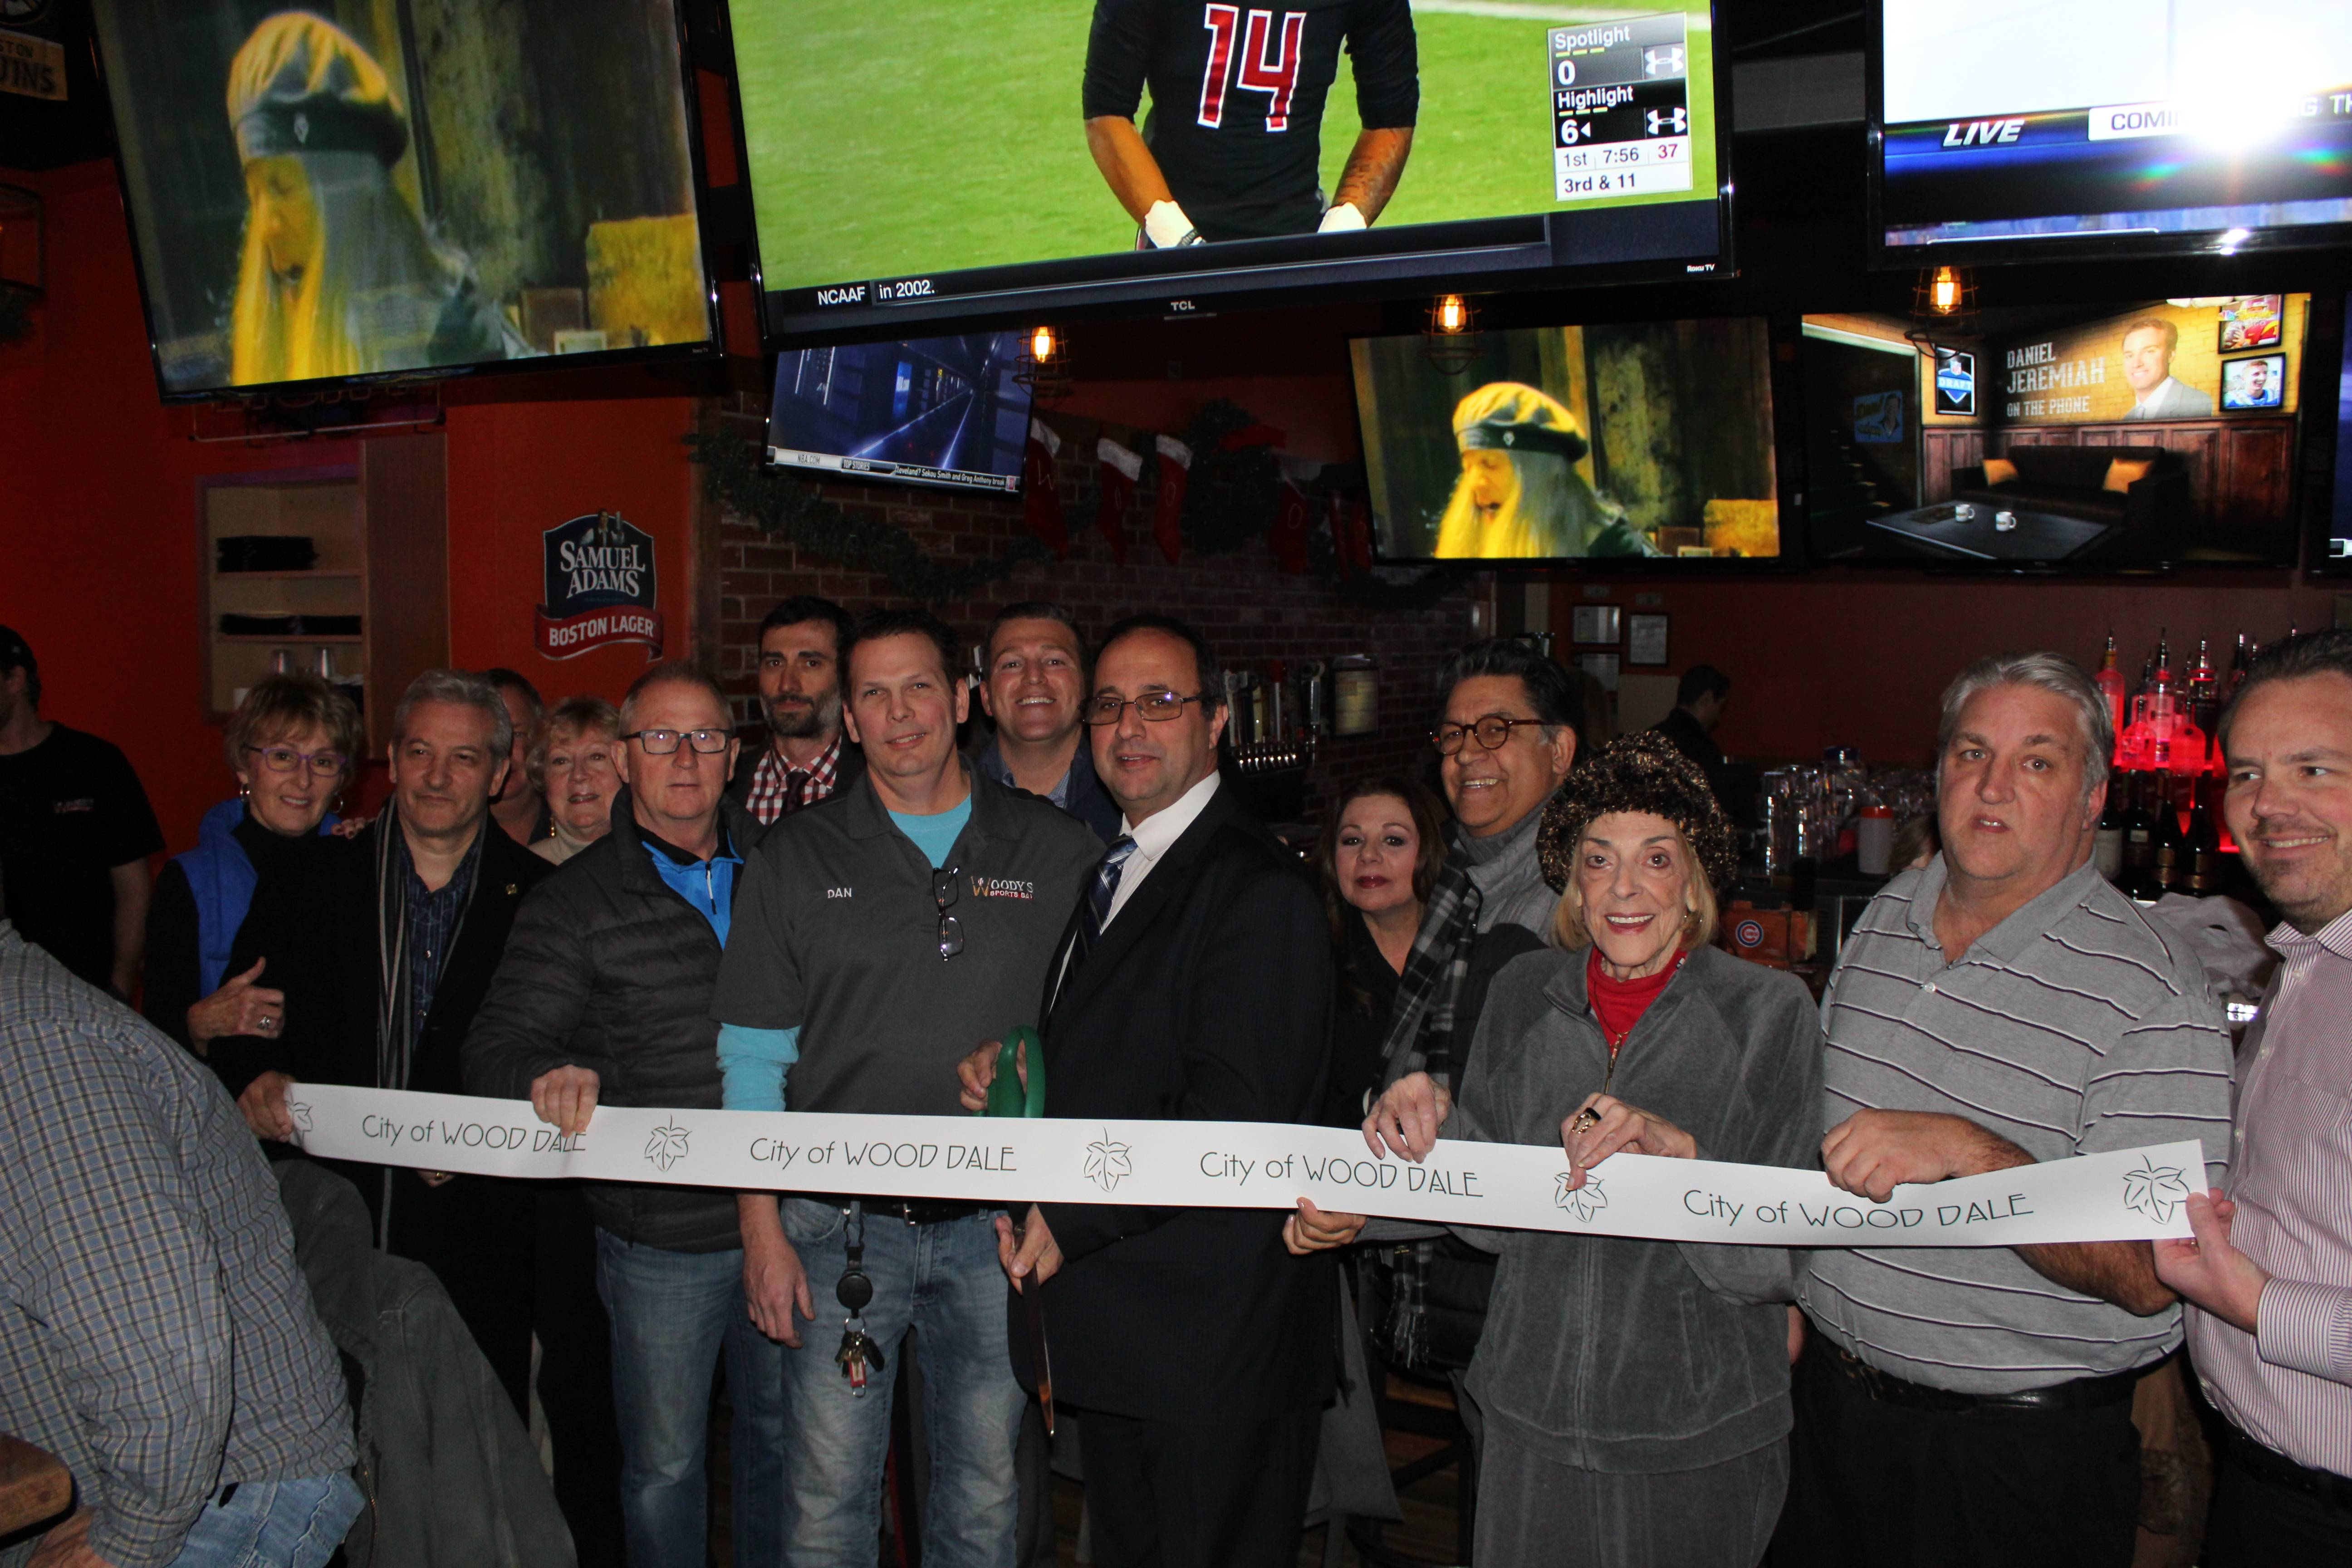 Members of the Wood Dale City Council celebrate the grand opening of Woody's Sports Bar in Wood Dale with a ribbon cutting.